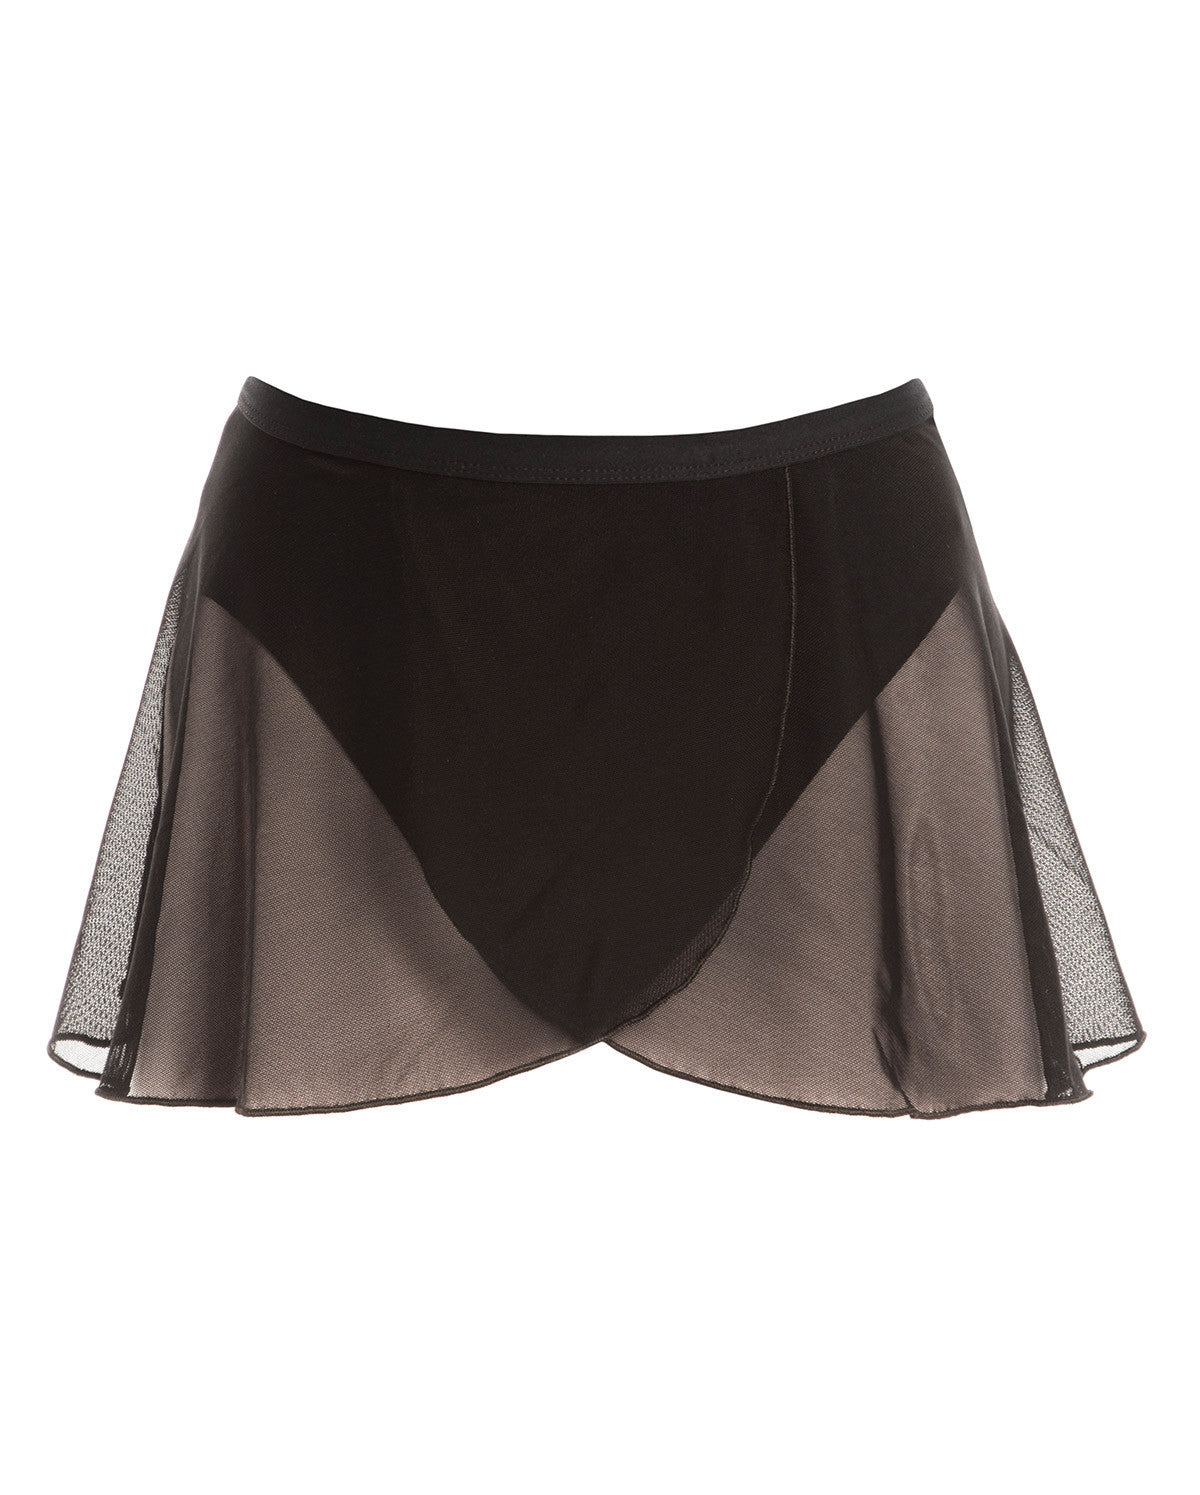 ENERGETIKS WOMEN'S BELLA SKIRT AS37M